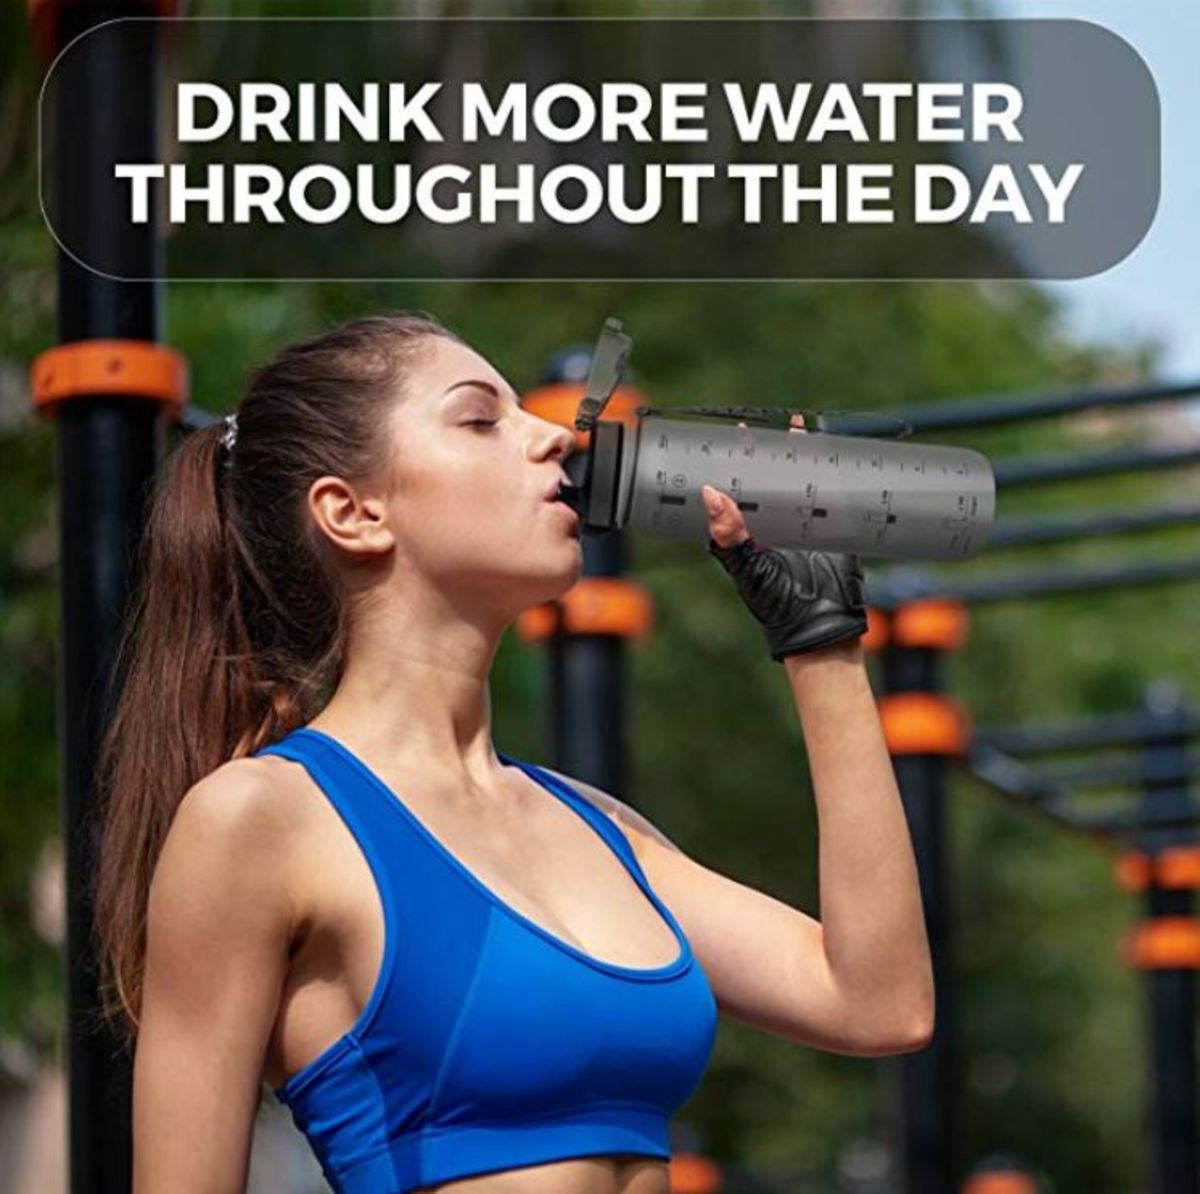 a-fun-and-easy-solution-to-drink-more-water